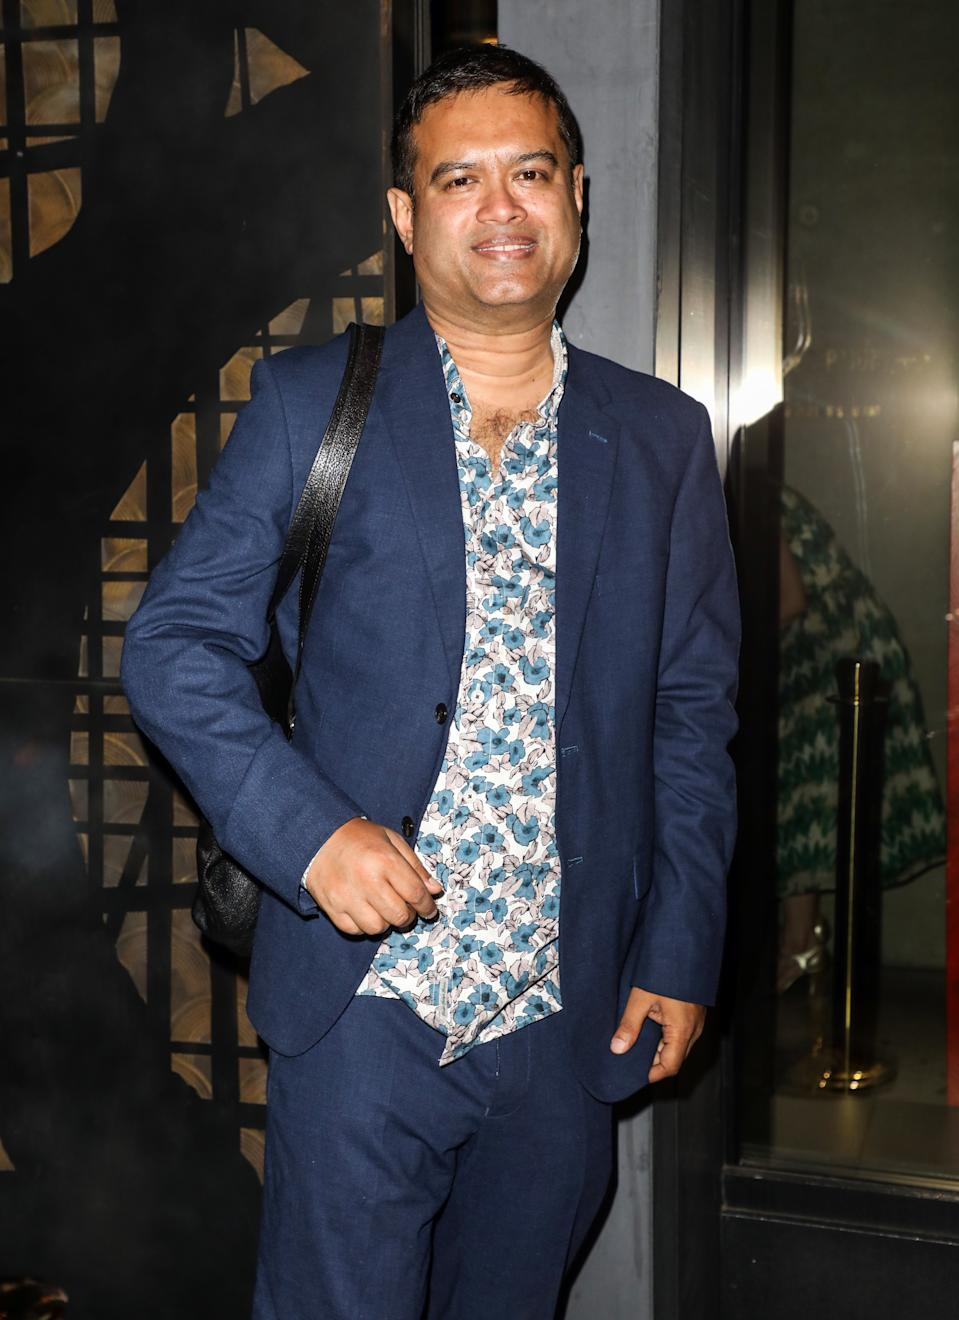 Paul Sinha attending the ITV Summer Party 2019 at Nobu Shoreditch in London (Photo by Brett Cove / SOPA Images/Sipa USA)